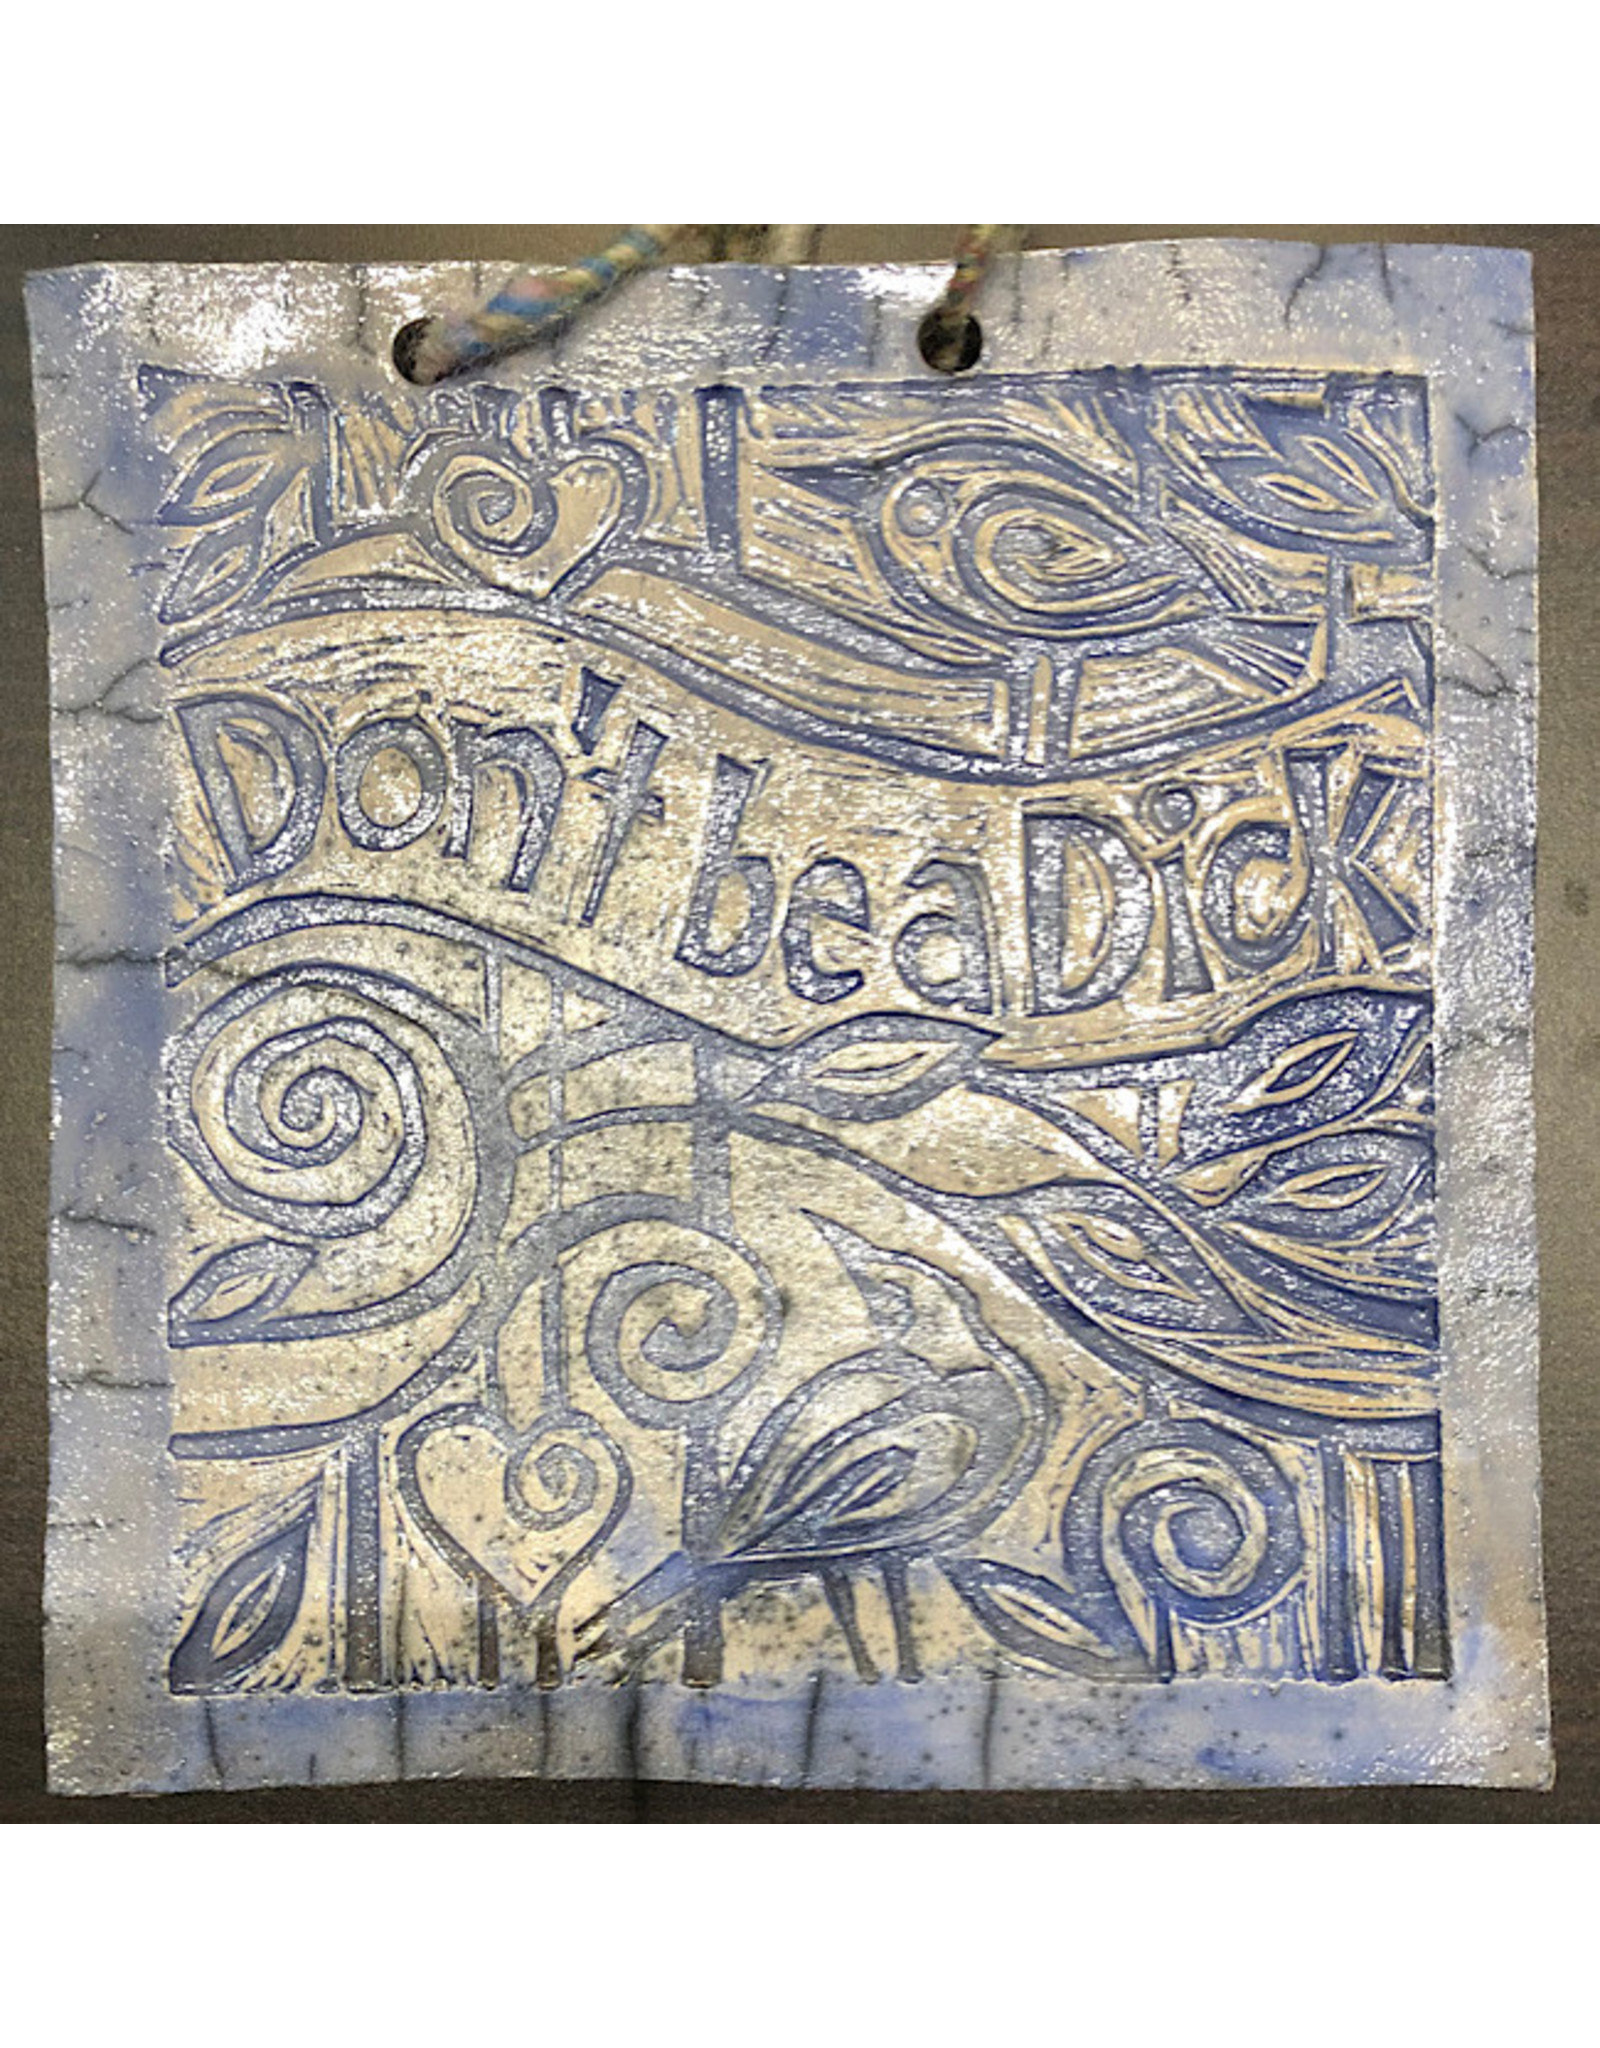 Wall Tile - Don't Be A Dick (Blue)